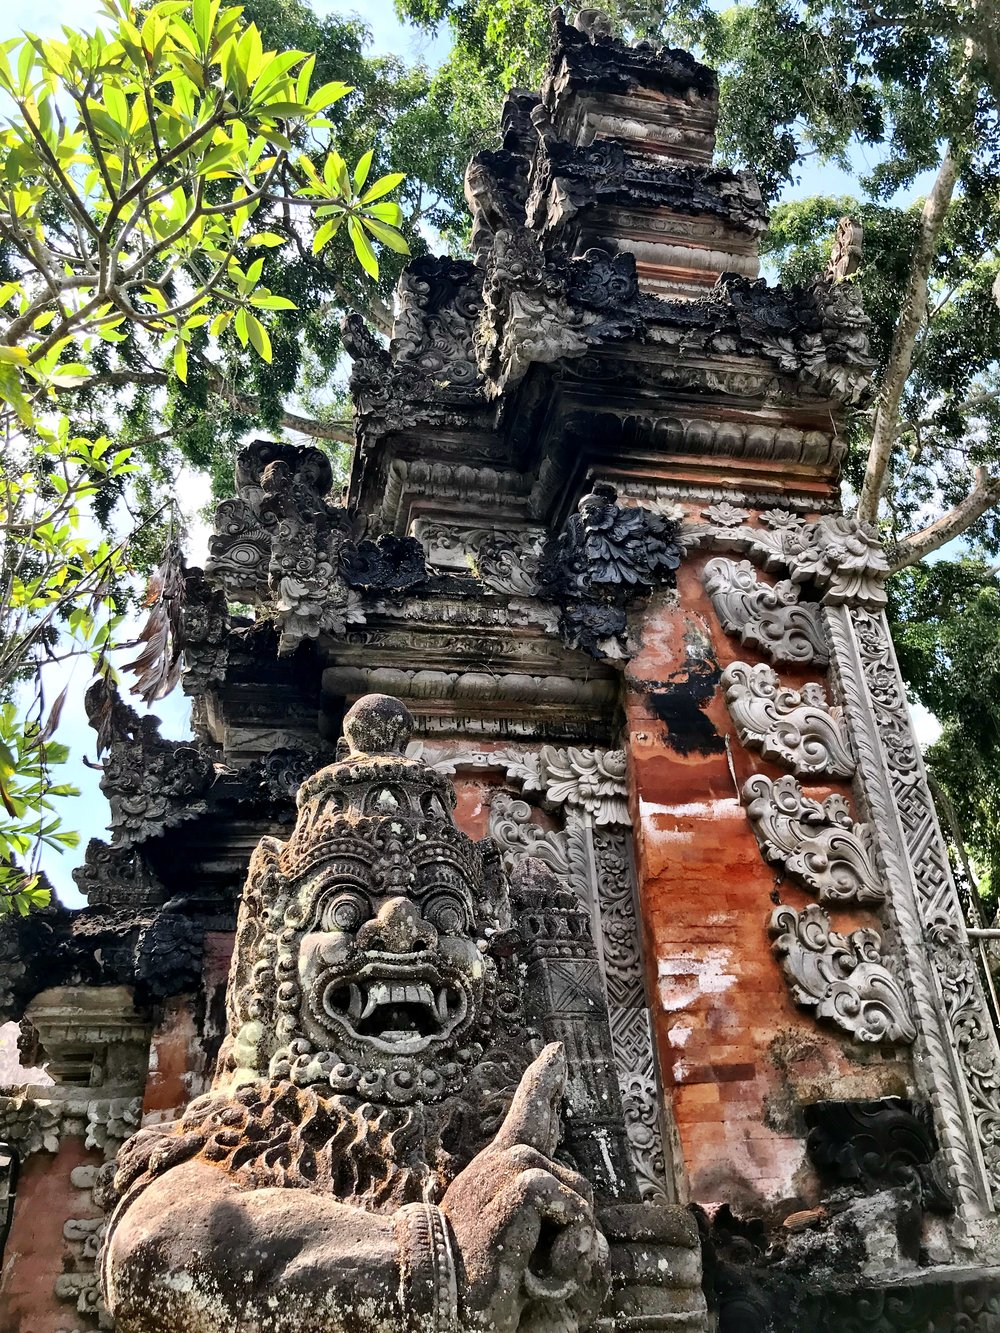 Lichen covers Balinese temples, lending an ancient air to even the newer ones